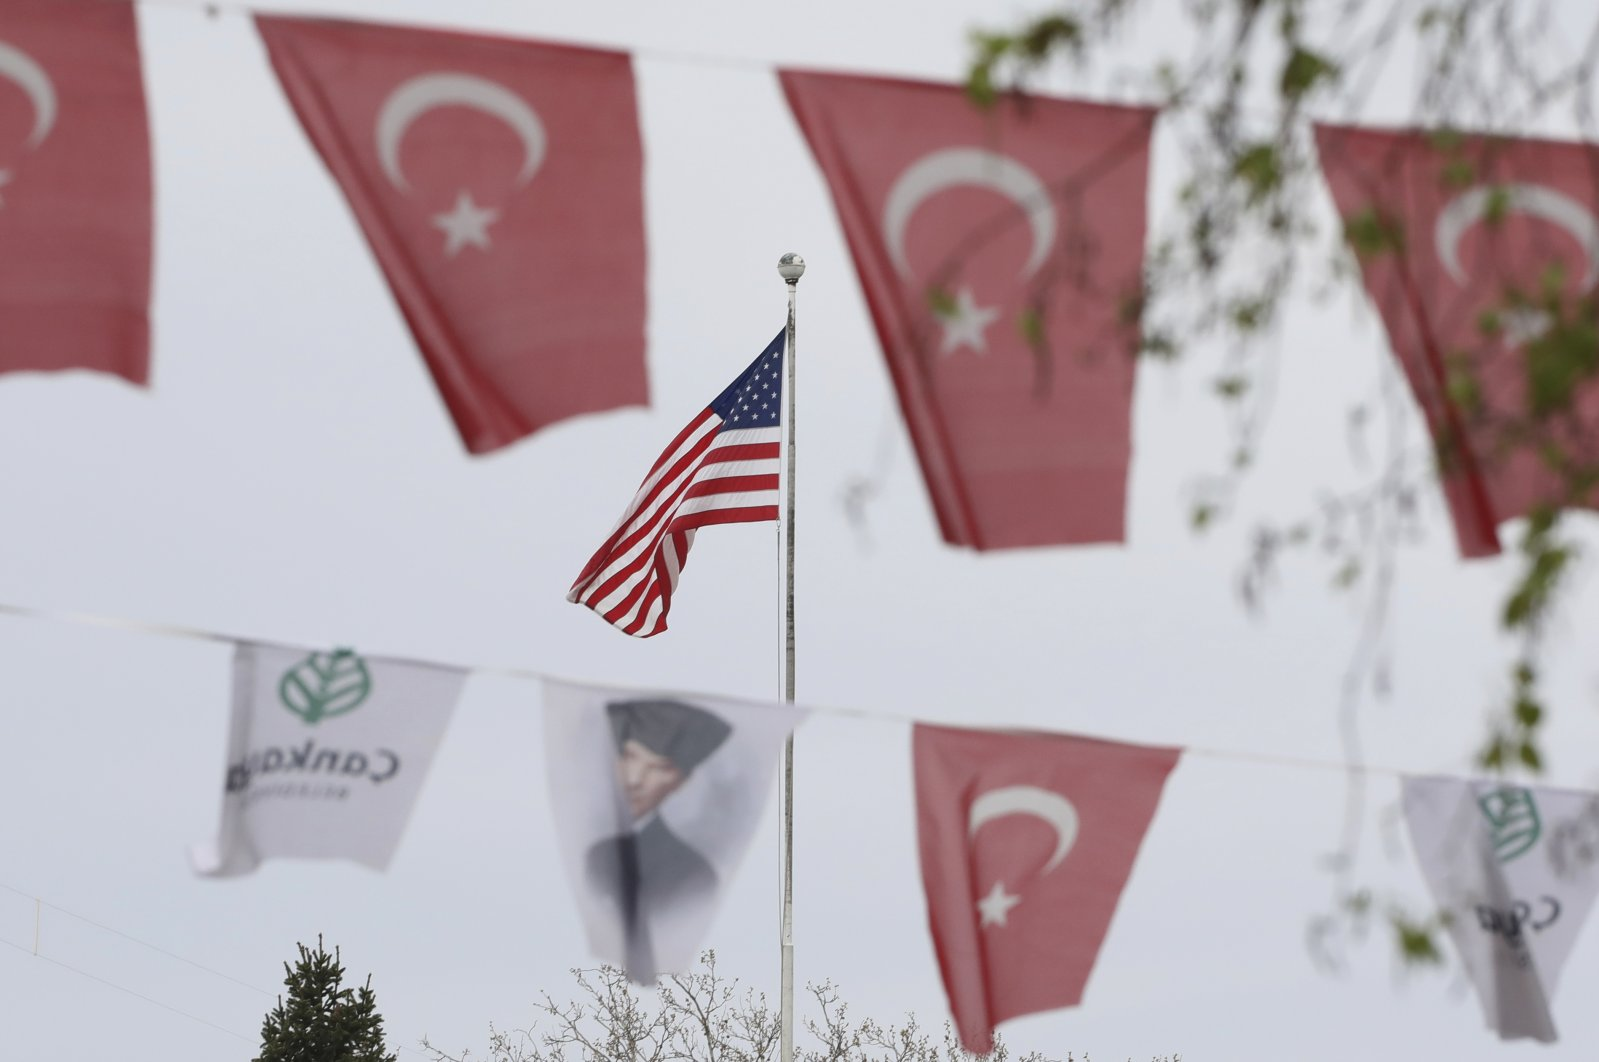 Turkish flags and banners depicting Mustafa Kemal Ataturk, the founder of modern Turkey, decorate a street outside the United States Embassy in capital Ankara, Turkey, April 25, 2021. (AP Photo)